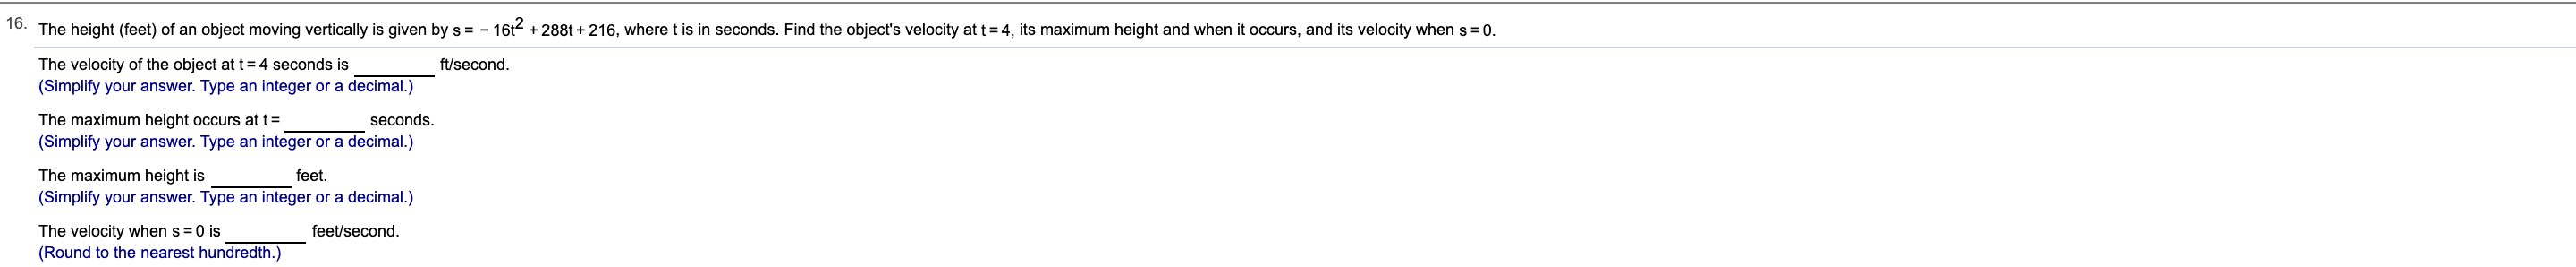 o. The height (feet) of an object moving vertically is given by s = - 16t288t+216, where t is in seconds. Find the object's velocity at t 4, its maximum height and when it occurs, and its velocity when s 0. The velocity of the object at t4 seconds is (Simplify your answer. Type an integer or a decimal.) ft/second The maximum height occurs at t= seconds. (Simplify your answer. Type an integer or a decimal.) The maximum height is feet (Simplify your answer. Type an integer or a decimal.) feet/second The velocity when s 0 is (Round to the nearest hundredth.)